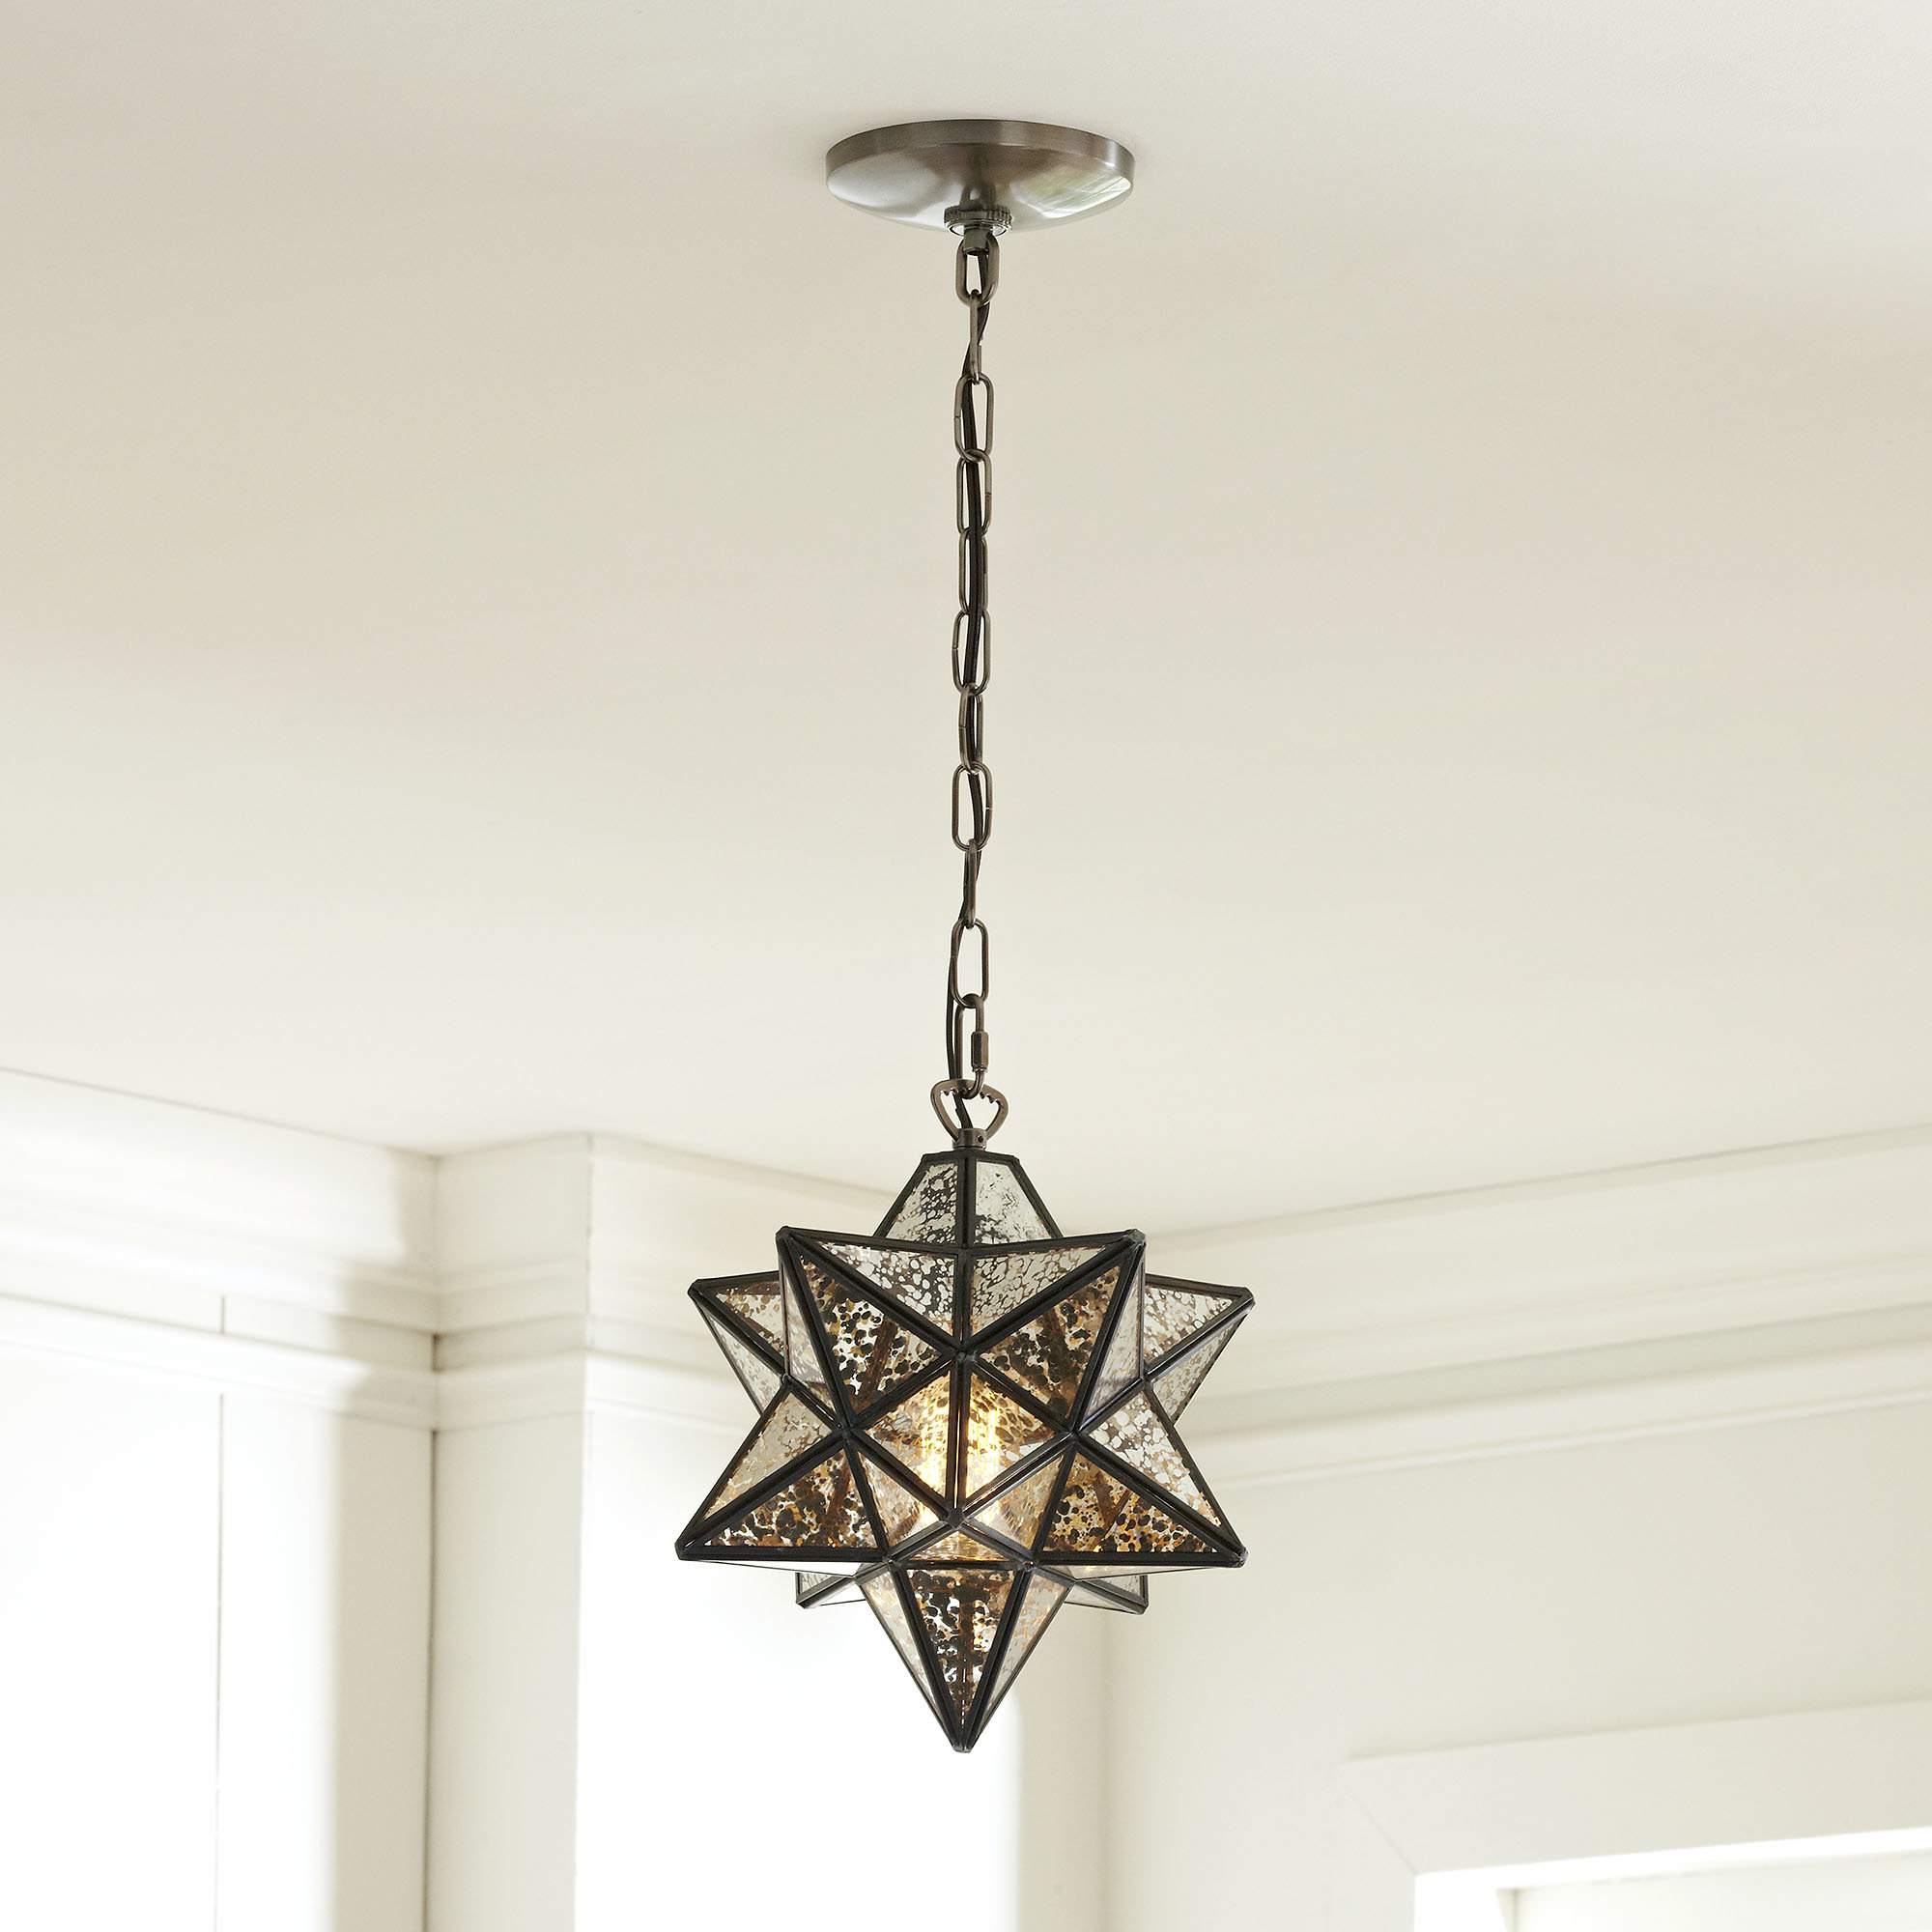 1 Light Single Star Pendants Intended For Famous 1 Light Single Star Pendant (View 9 of 20)